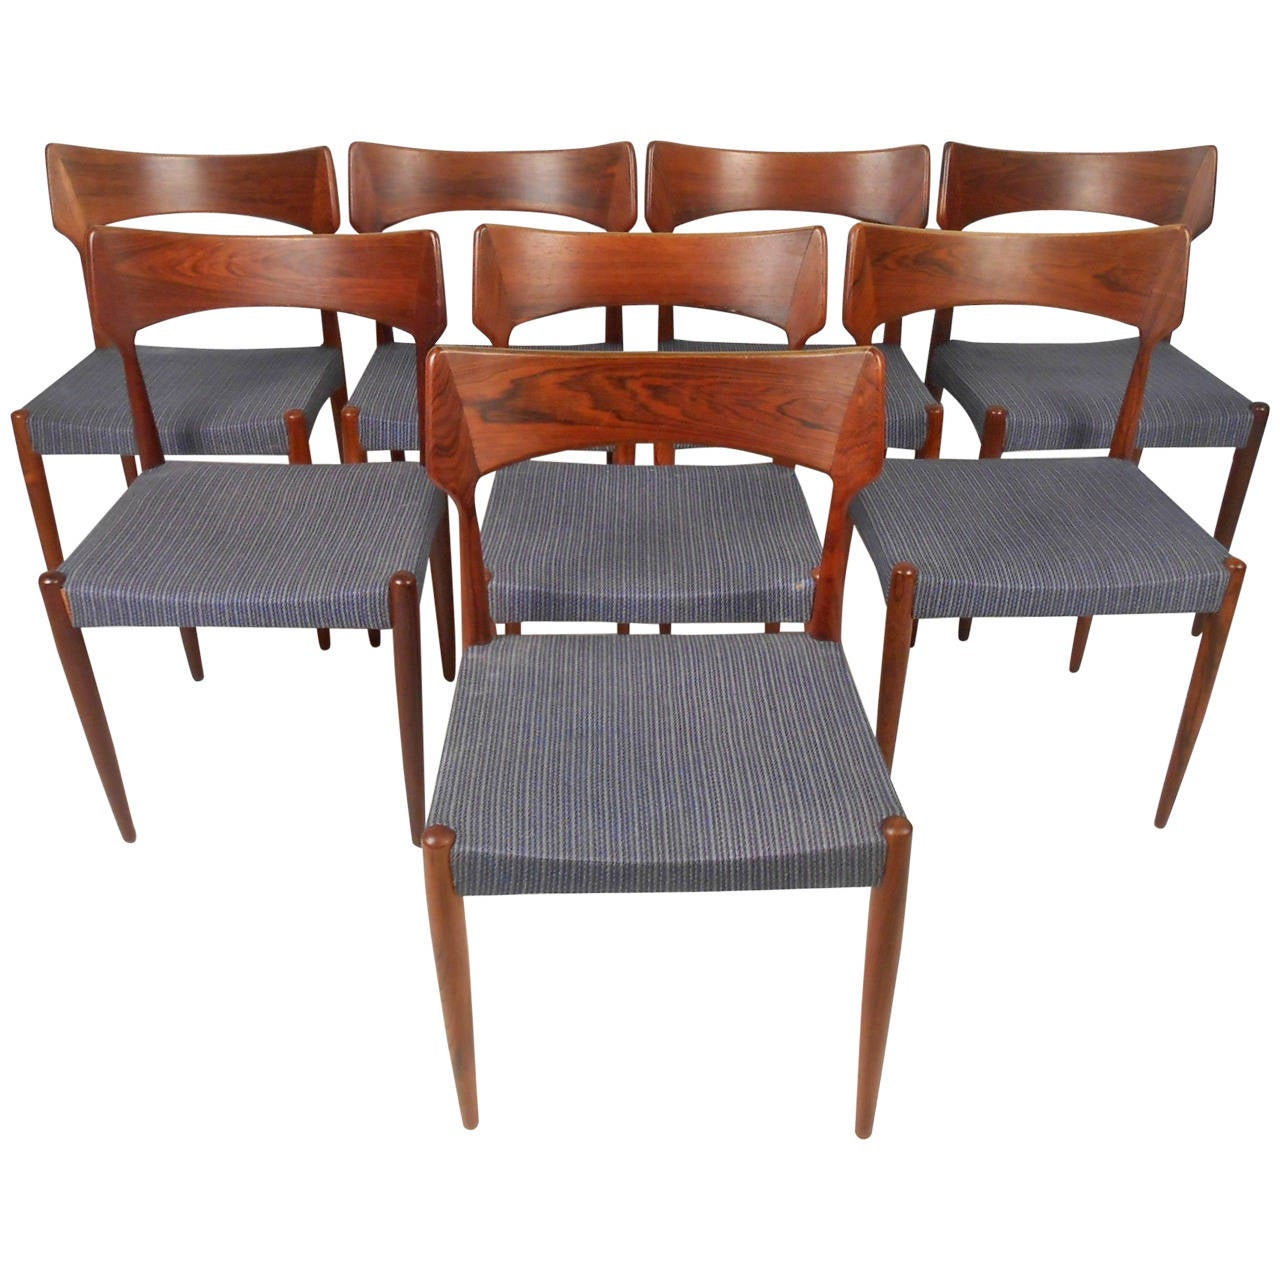 Danish rosewood dining chairs at 1stdibs for Danish dining room chairs